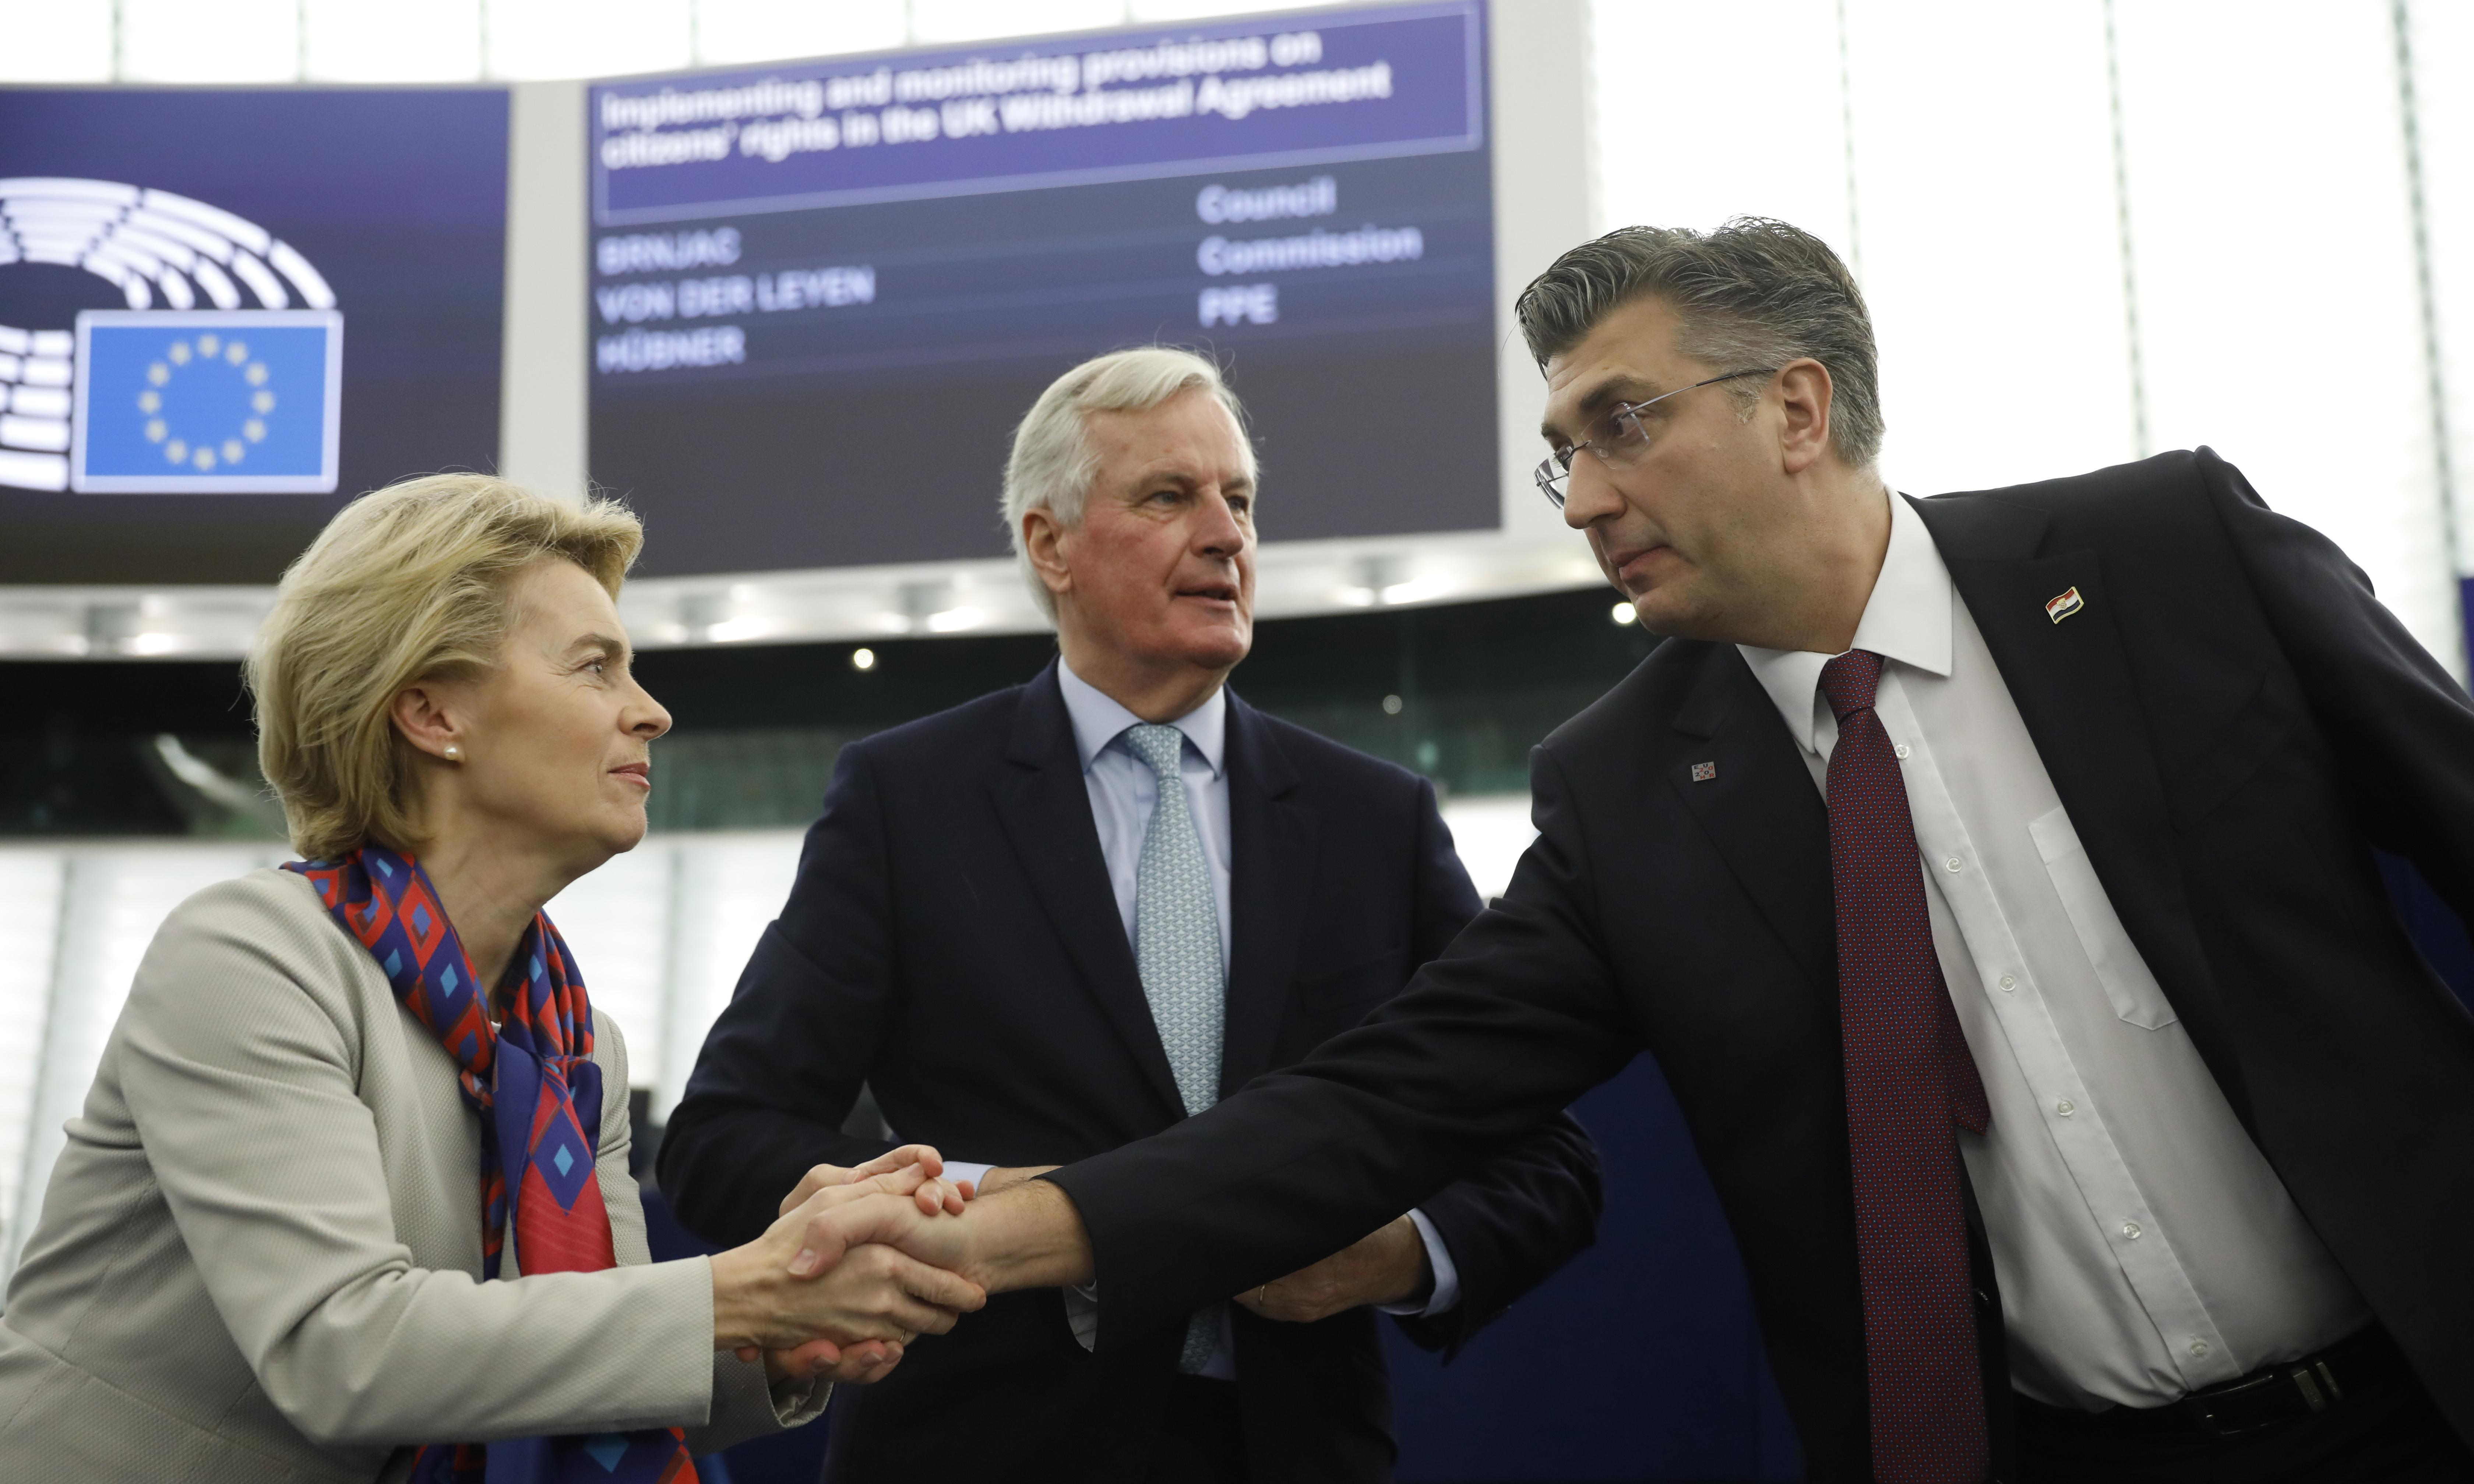 What has the EU been up to in the run-up to Brexit?